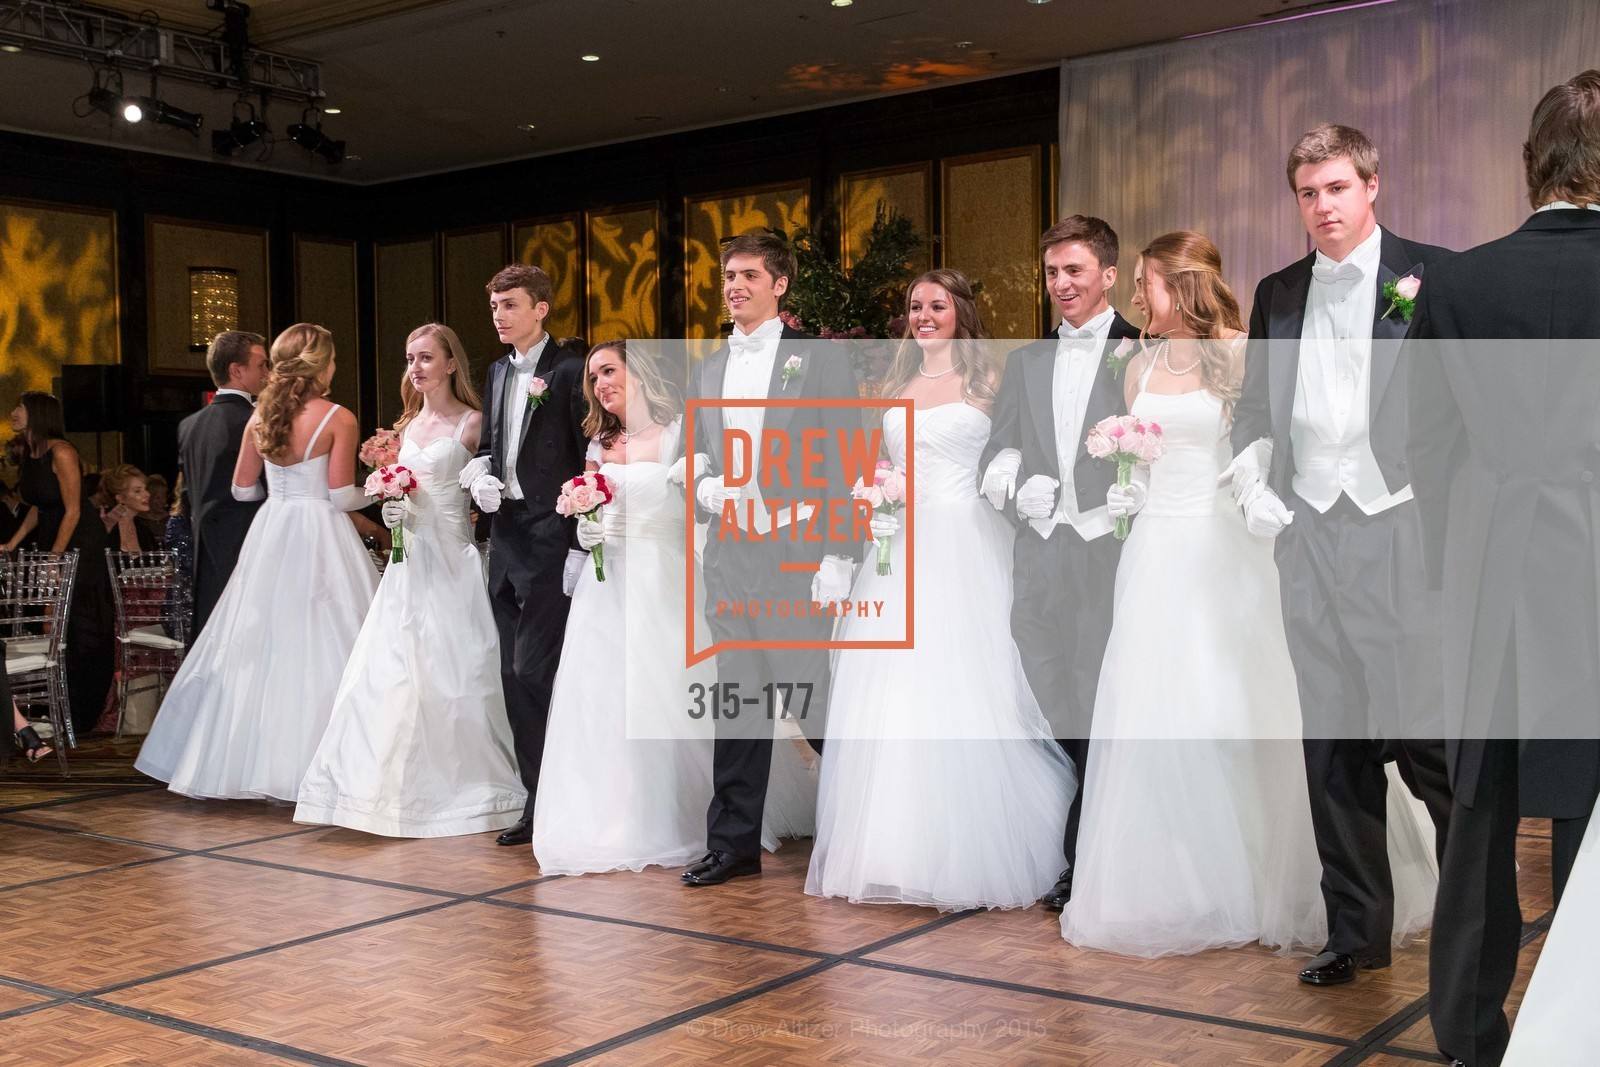 Brooke Raabe, Alexander James Douglas, Lily Ostler, Samuel Jameson Avery, Rachael Jayne Maier, Jack Andrew Kariotis, Paloma Elizabeth Palmer, John Bernanrd Travers, The 2015 San Francisco Debutante Ball, The Westin St. Francis San Francisco Union Square. 335 Powell St, June 20th, 2015,Drew Altizer, Drew Altizer Photography, full-service agency, private events, San Francisco photographer, photographer california